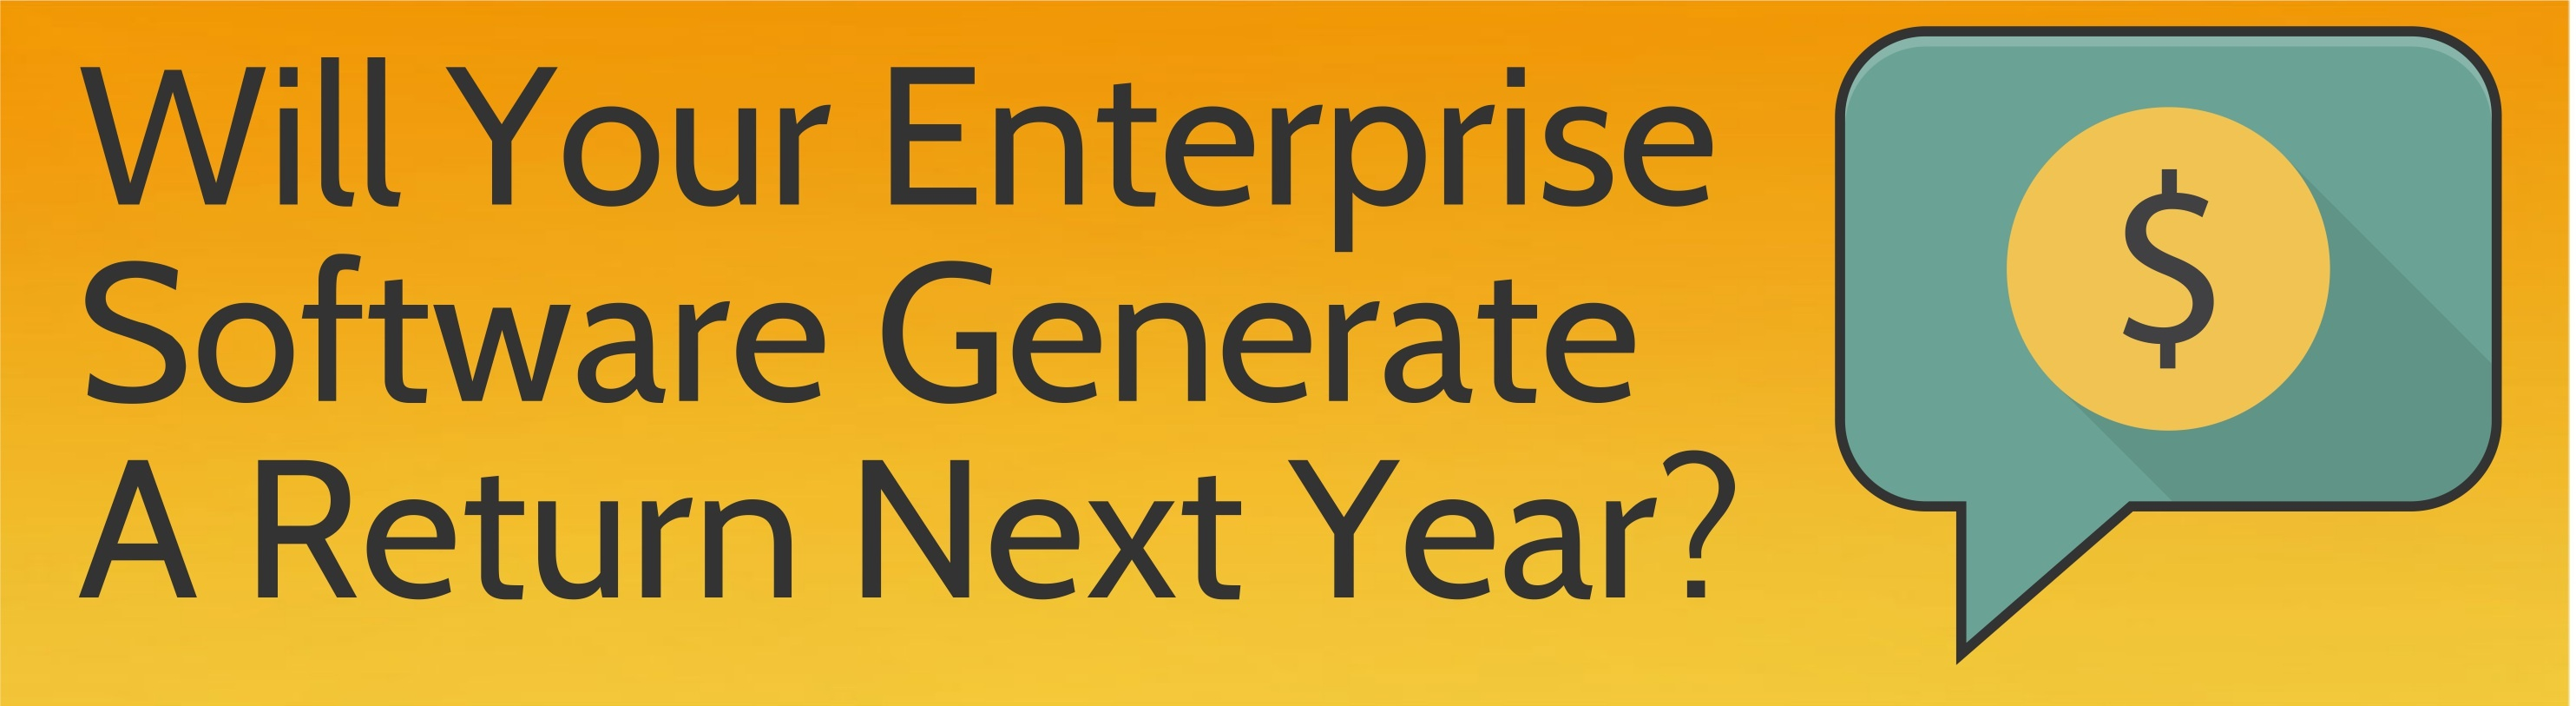 How Will Enterprise Software Generate ROI Next Year?